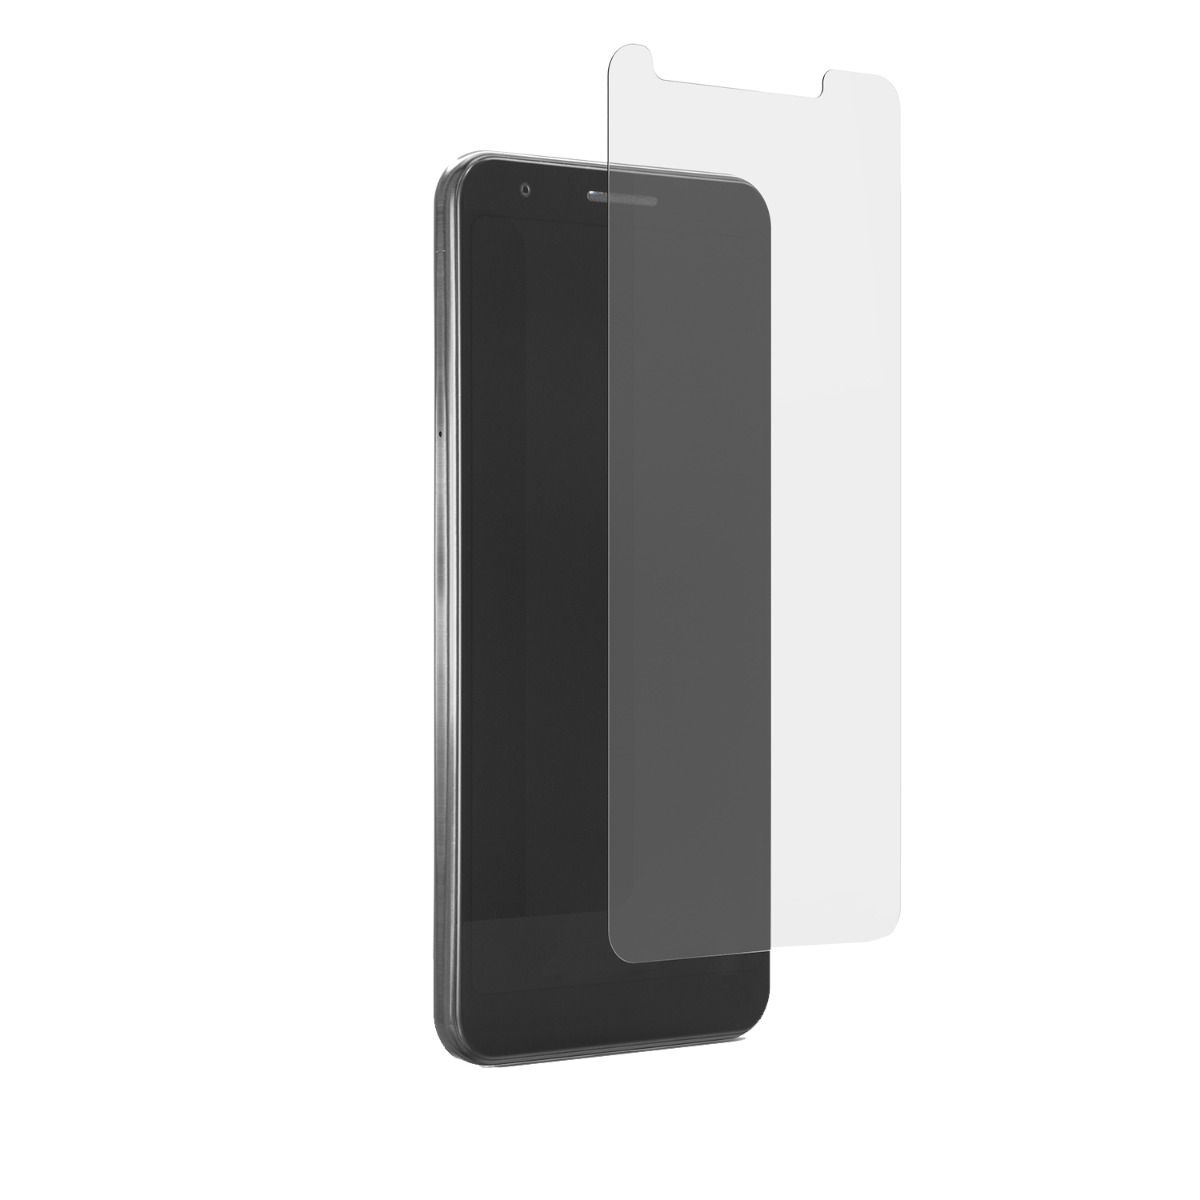 Samsung Galaxy Note9 Steel 360 Tempered Curved Glass Screen Protector with Alignment Tray and Pure Pledge up to $100